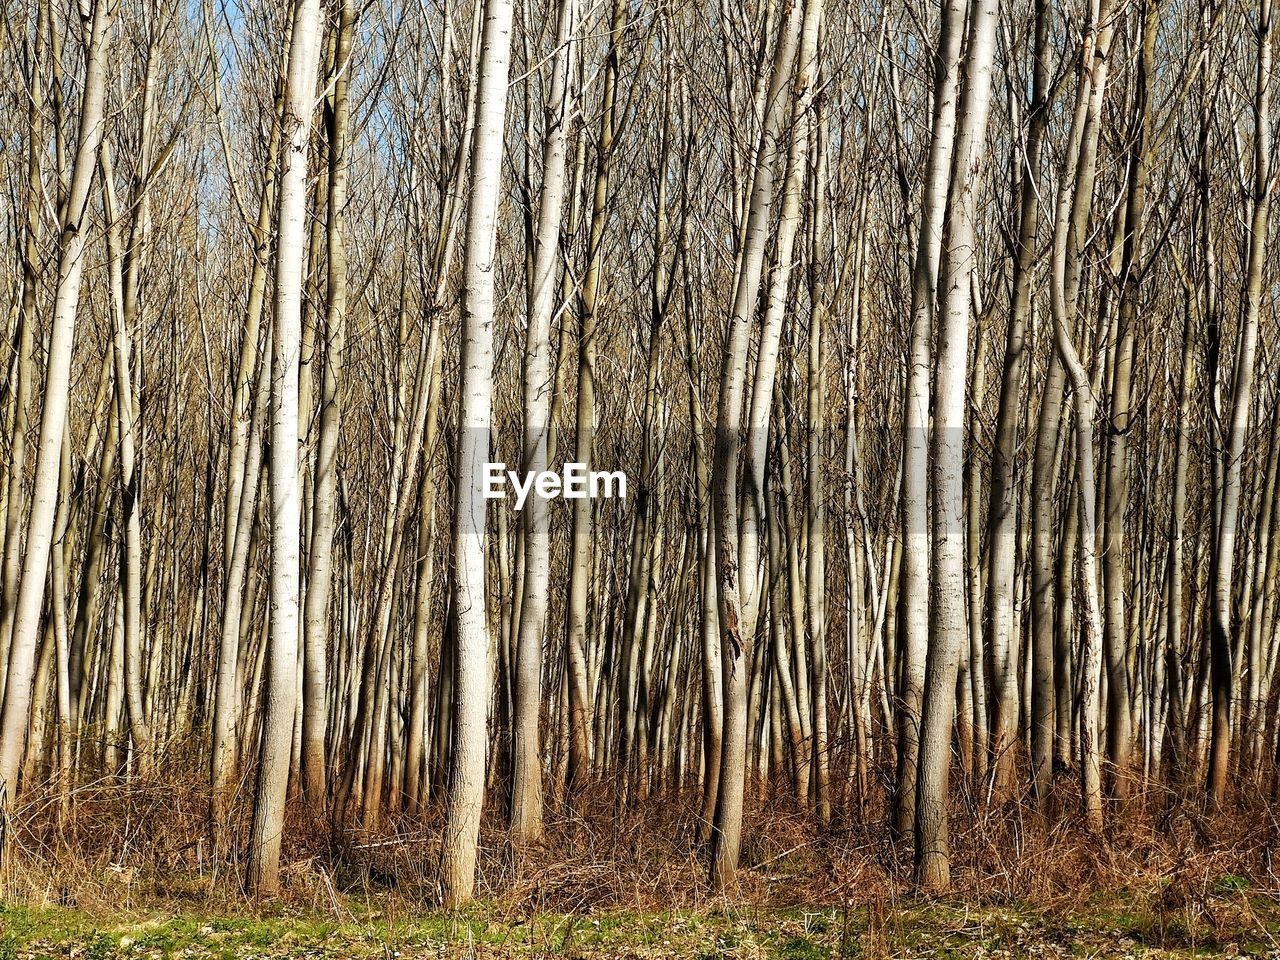 plant, tree, land, tree trunk, trunk, forest, nature, no people, day, growth, tranquility, woodland, outdoors, beauty in nature, grass, environment, field, landscape, backgrounds, non-urban scene, bamboo - plant